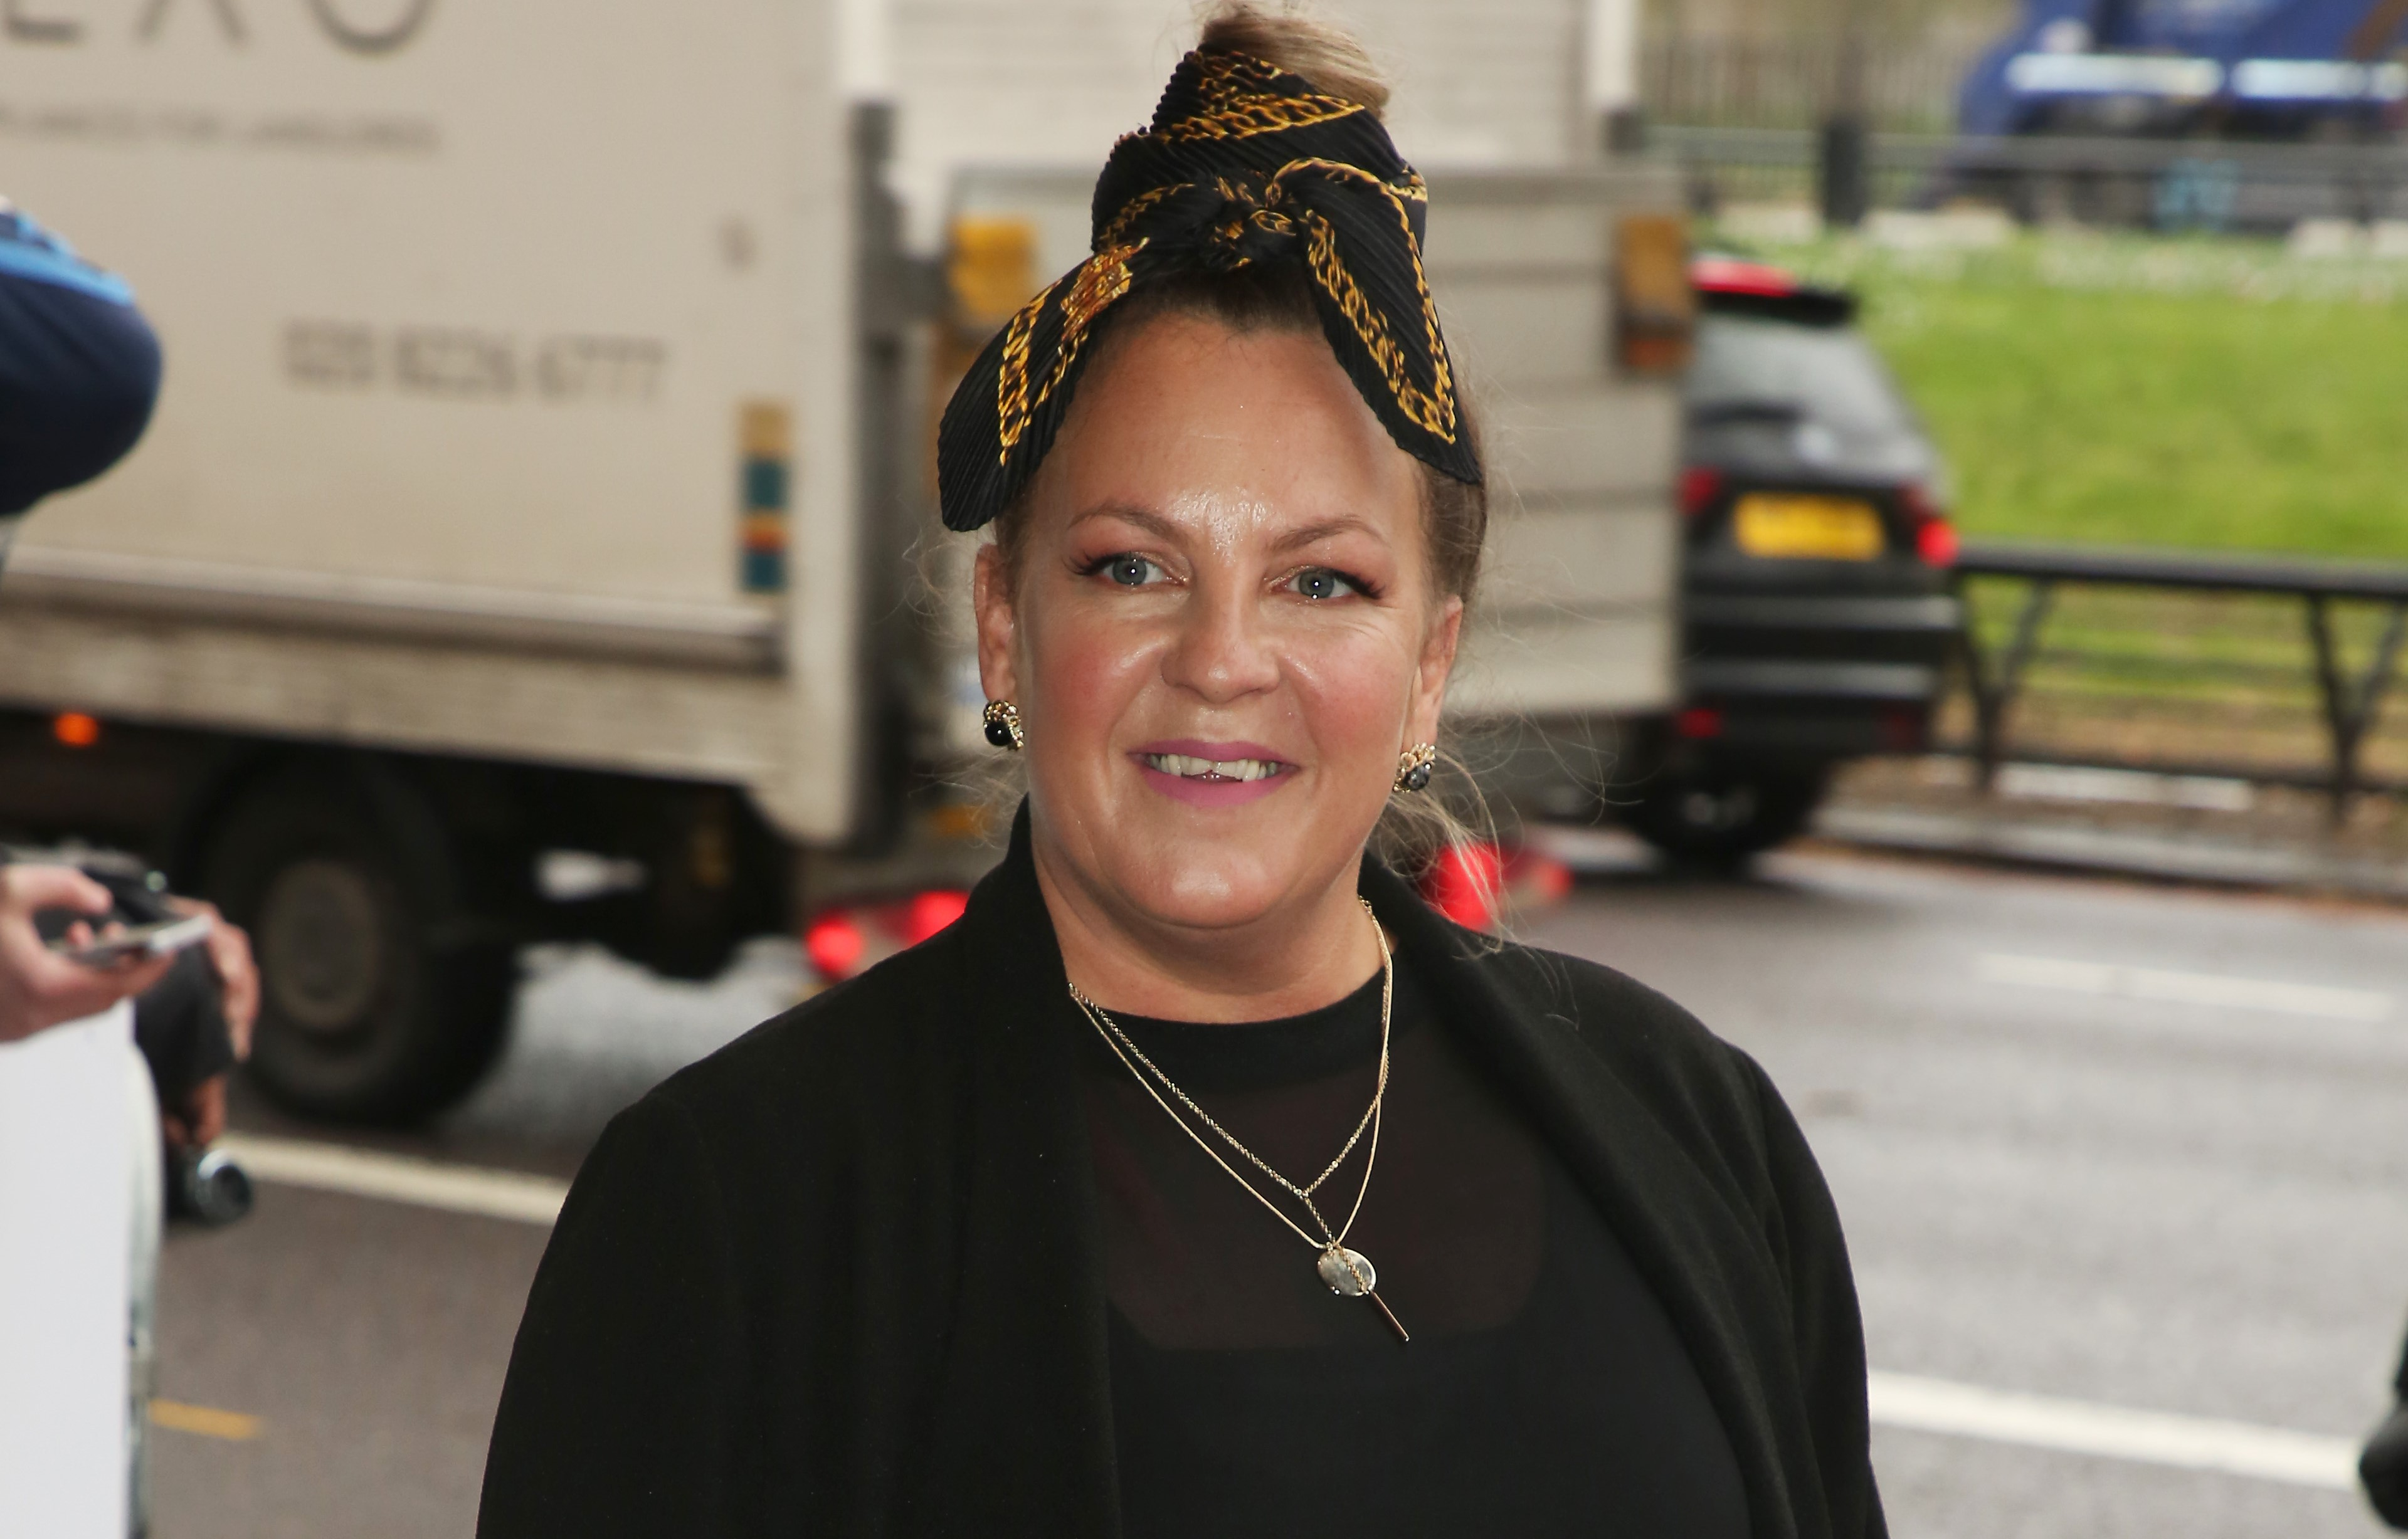 EastEnders star Lorraine Stanley shares picture with her other half to celebrate her birthday